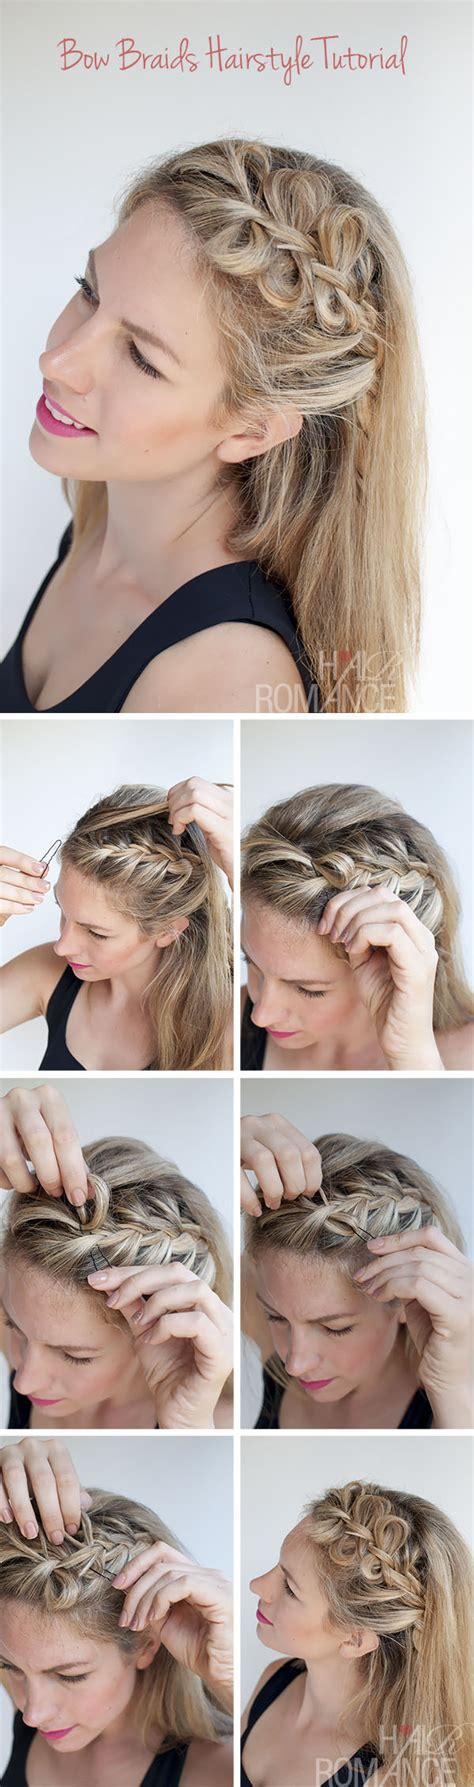 hairstyles braided tutorial craftionary